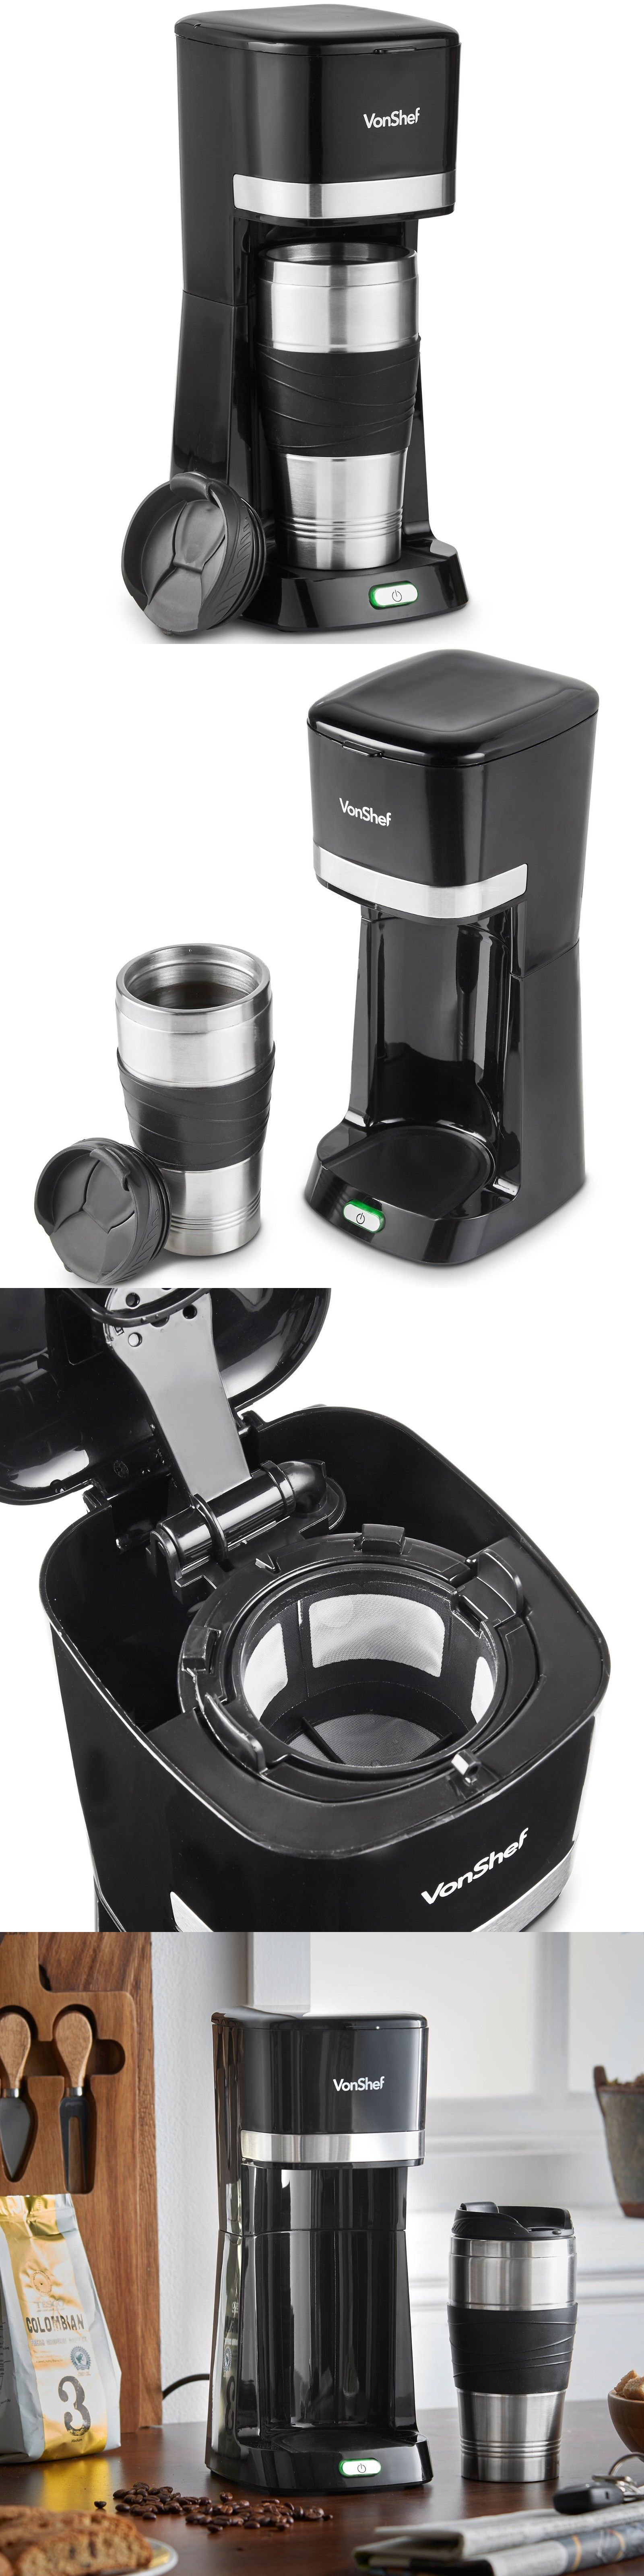 Filter Coffee Machines 184665 Vonshef One Cup Personal Coffee Maker